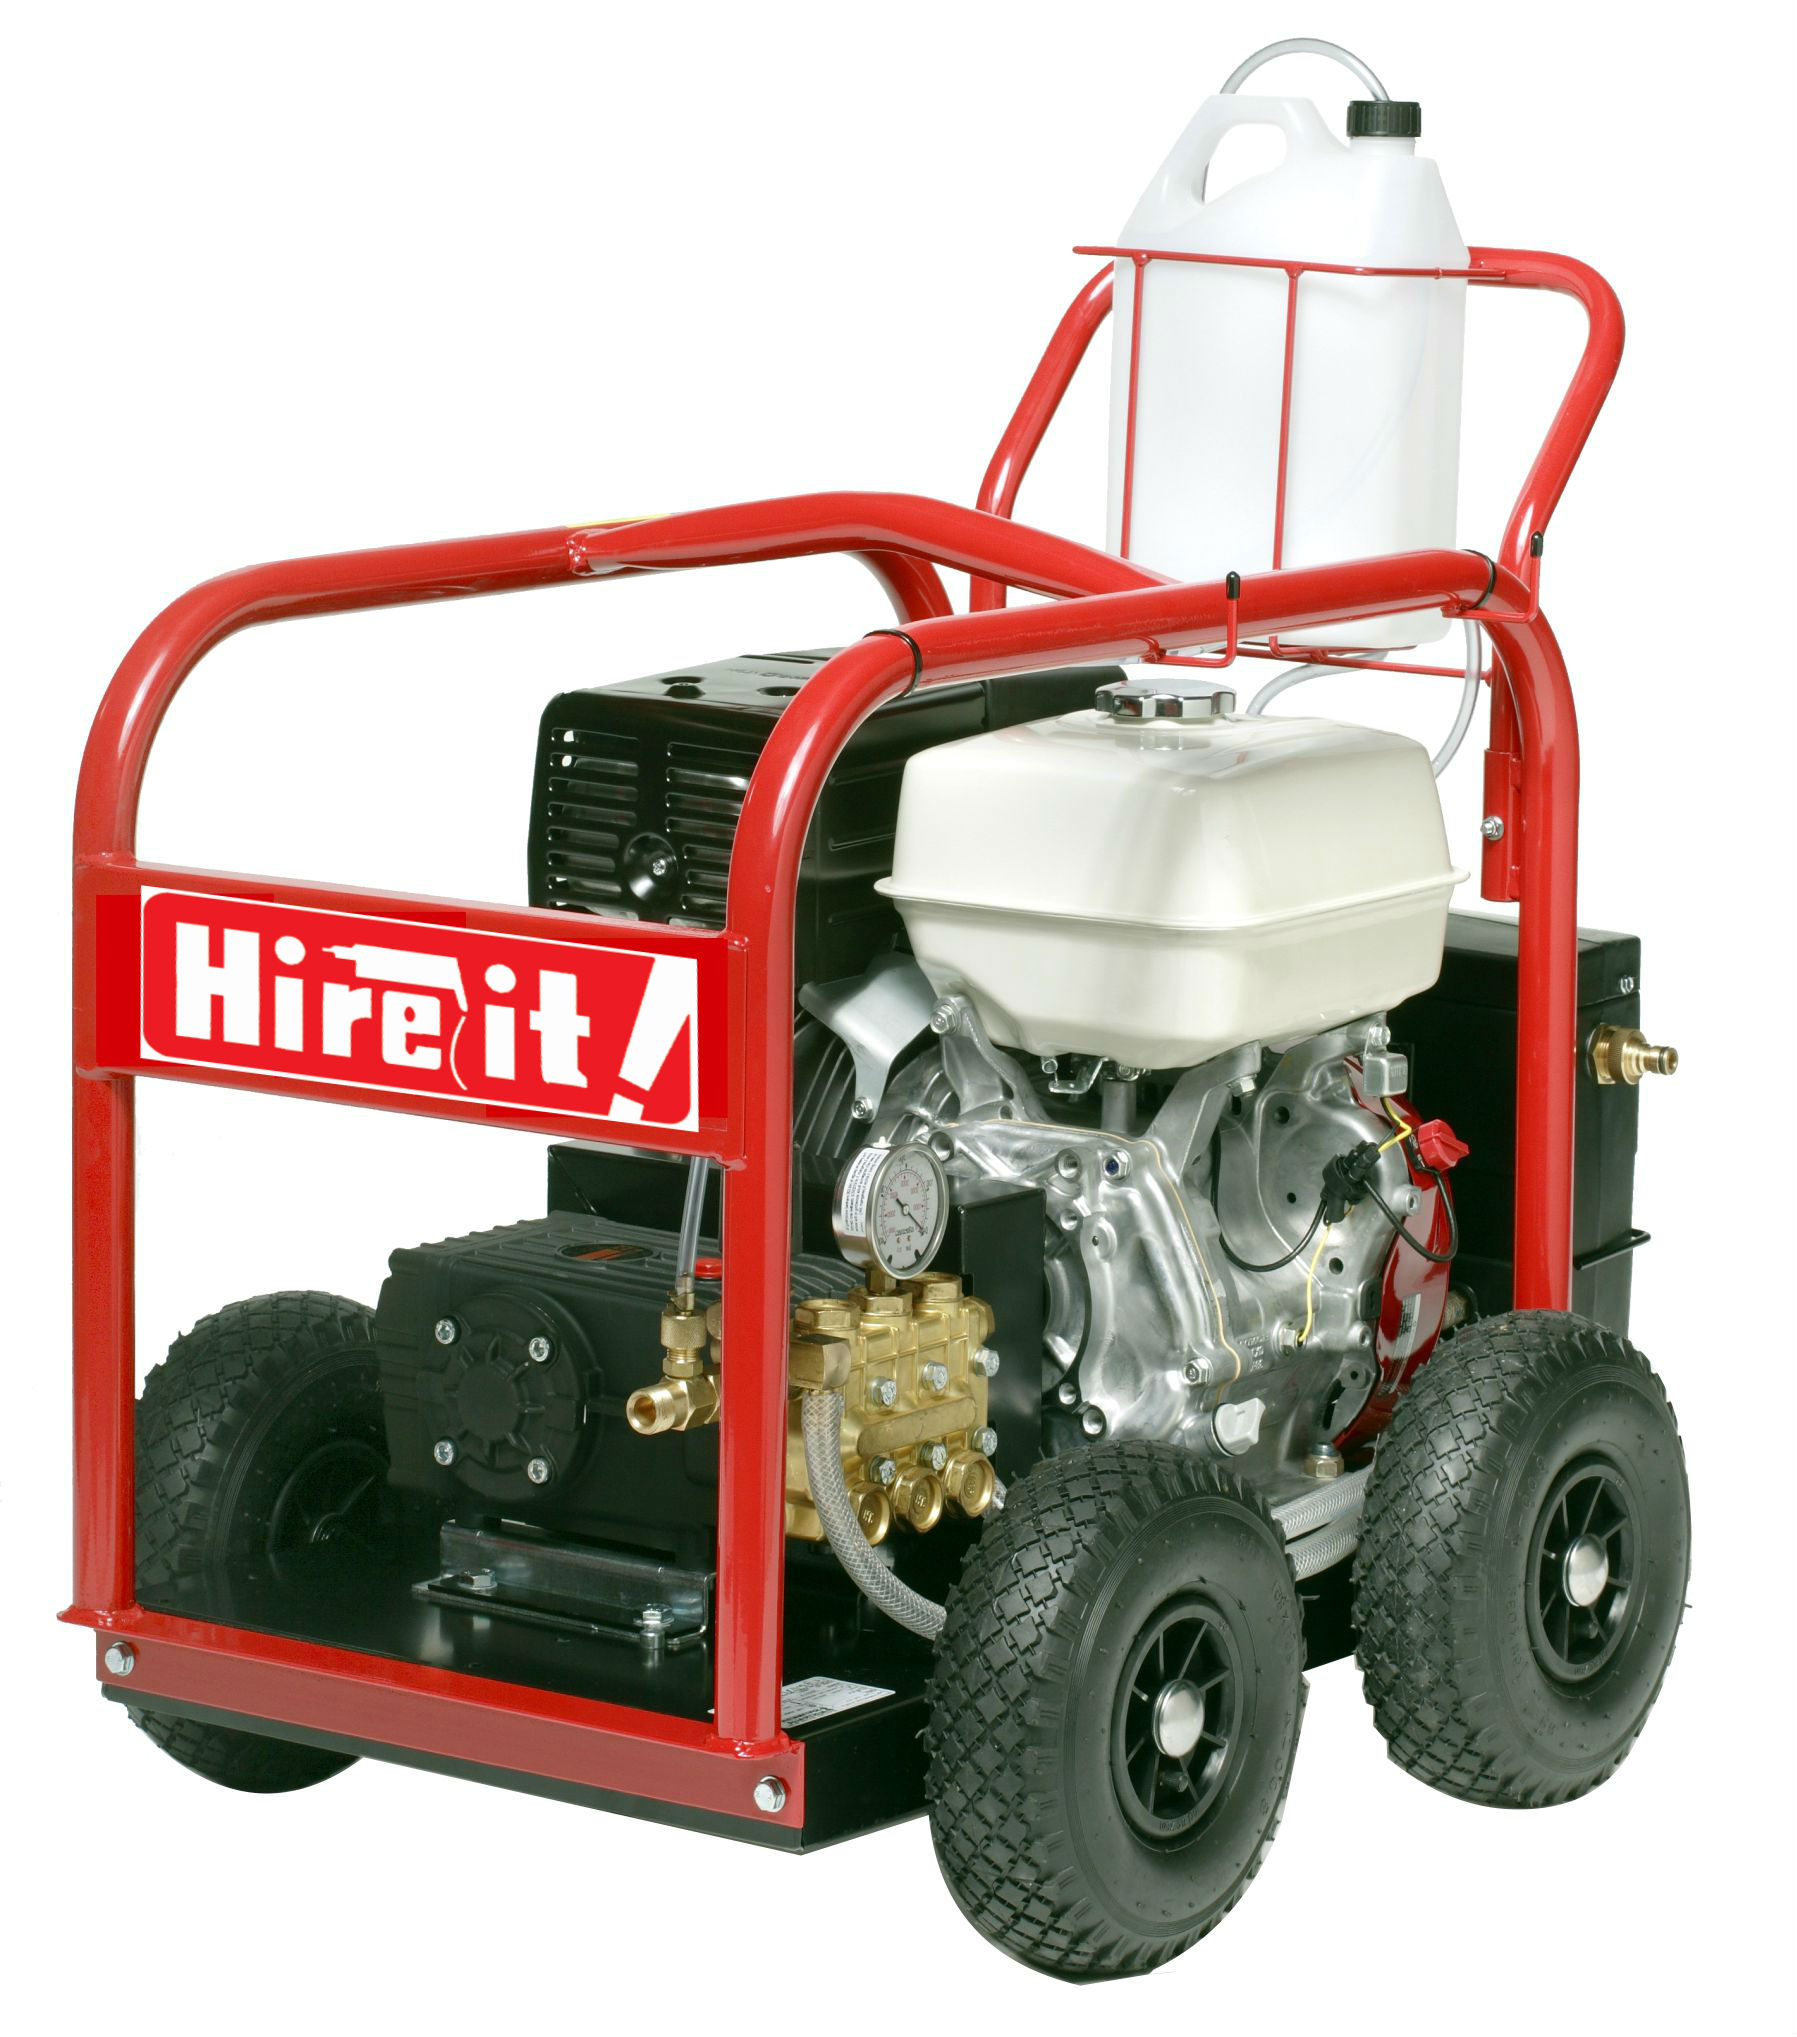 Hire-it | For all your builders equipment and power tool requirements